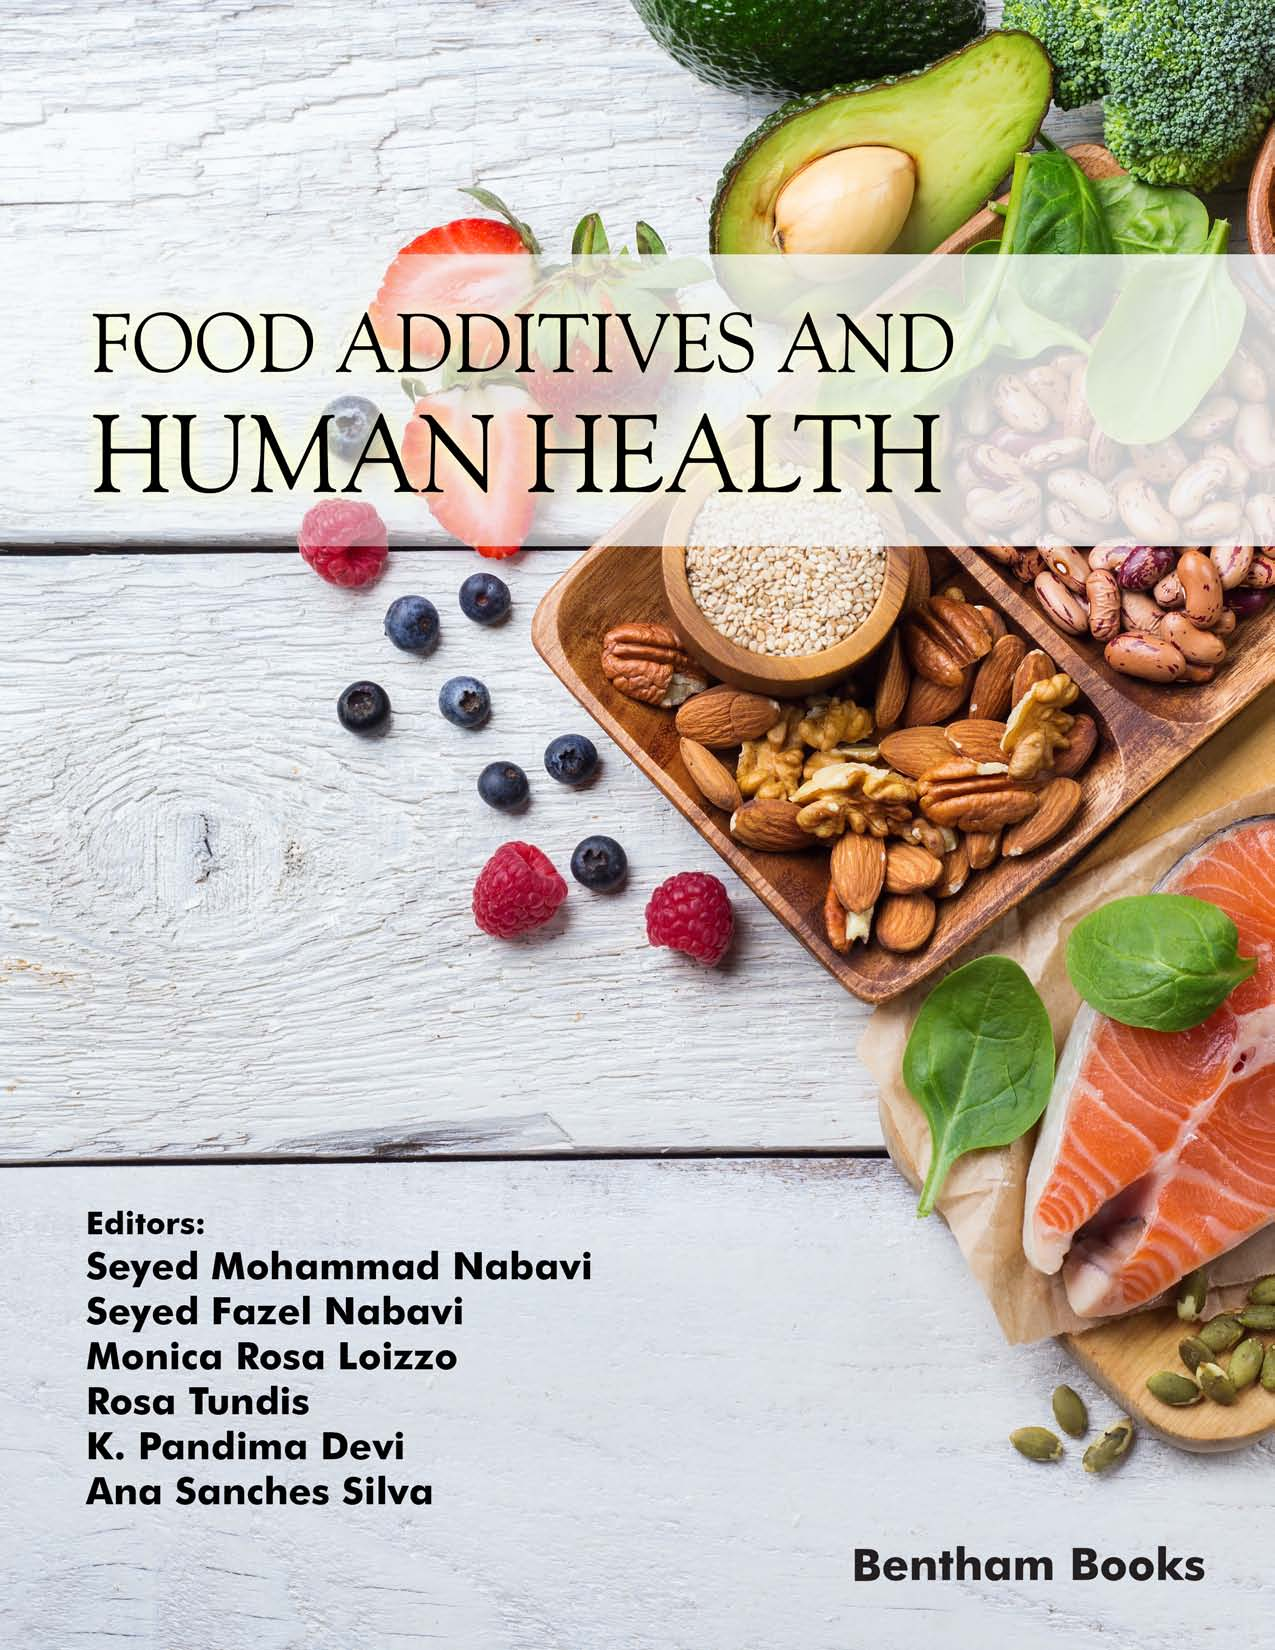 Food Additives and Human Health